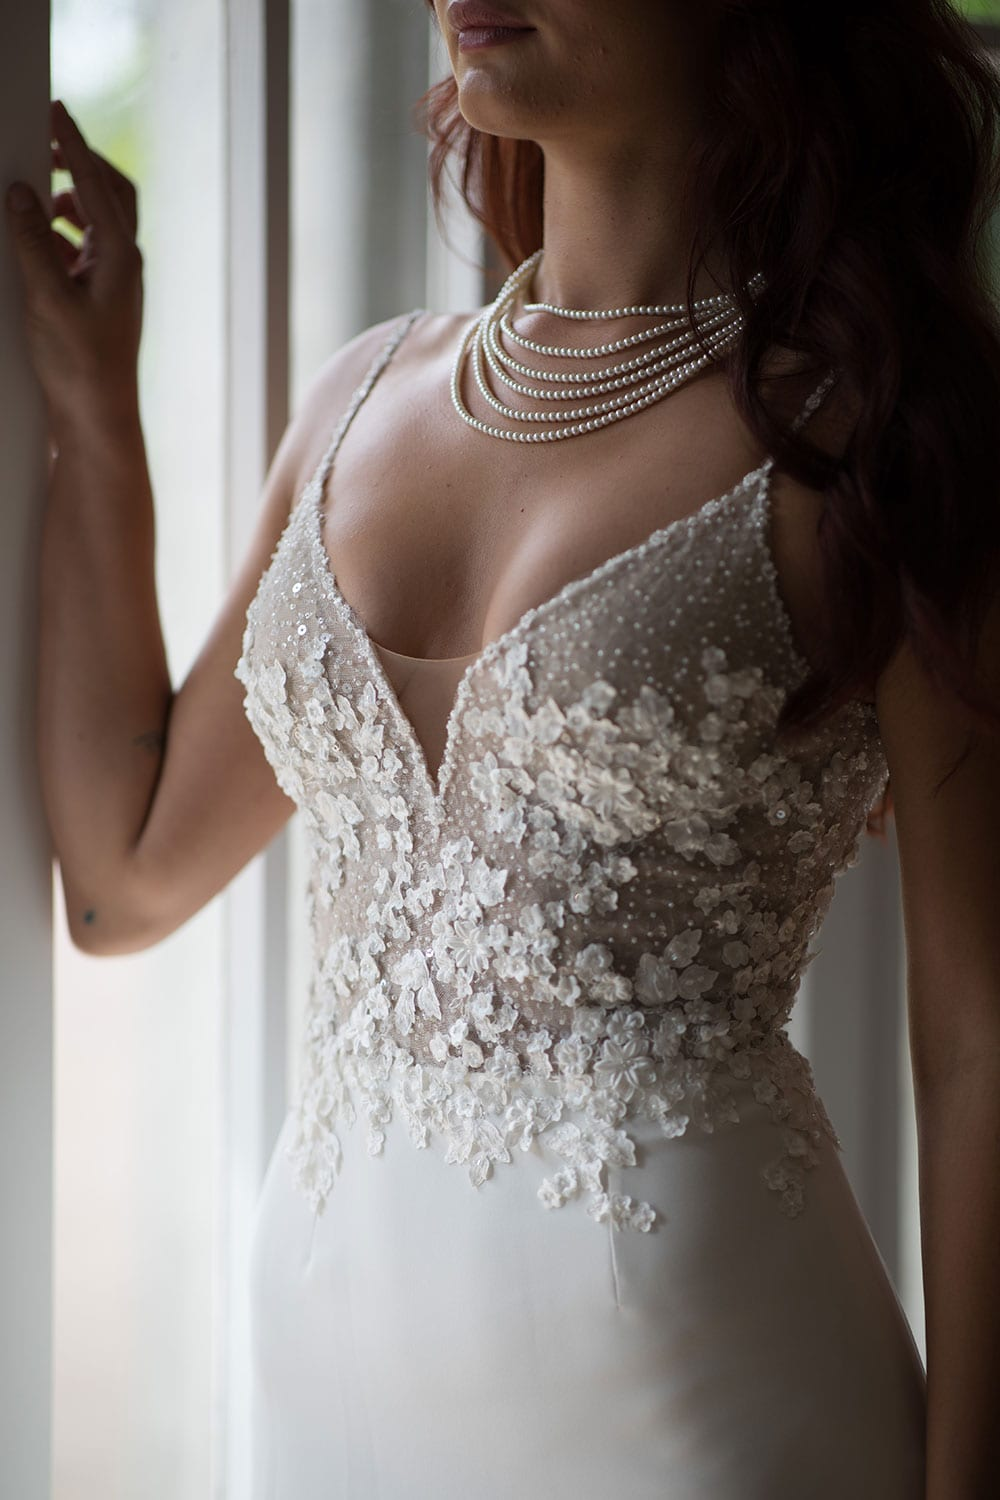 Azure Wedding Gown from Vinka Design - Elegantly tailored trouser combined with a beautiful lace blouse for the Modern Bride. The blouse features a high neck and low back, with in-built camisole, fitted sleeves, & pearl buttons. Model wearing gown , close up of bodice detail.